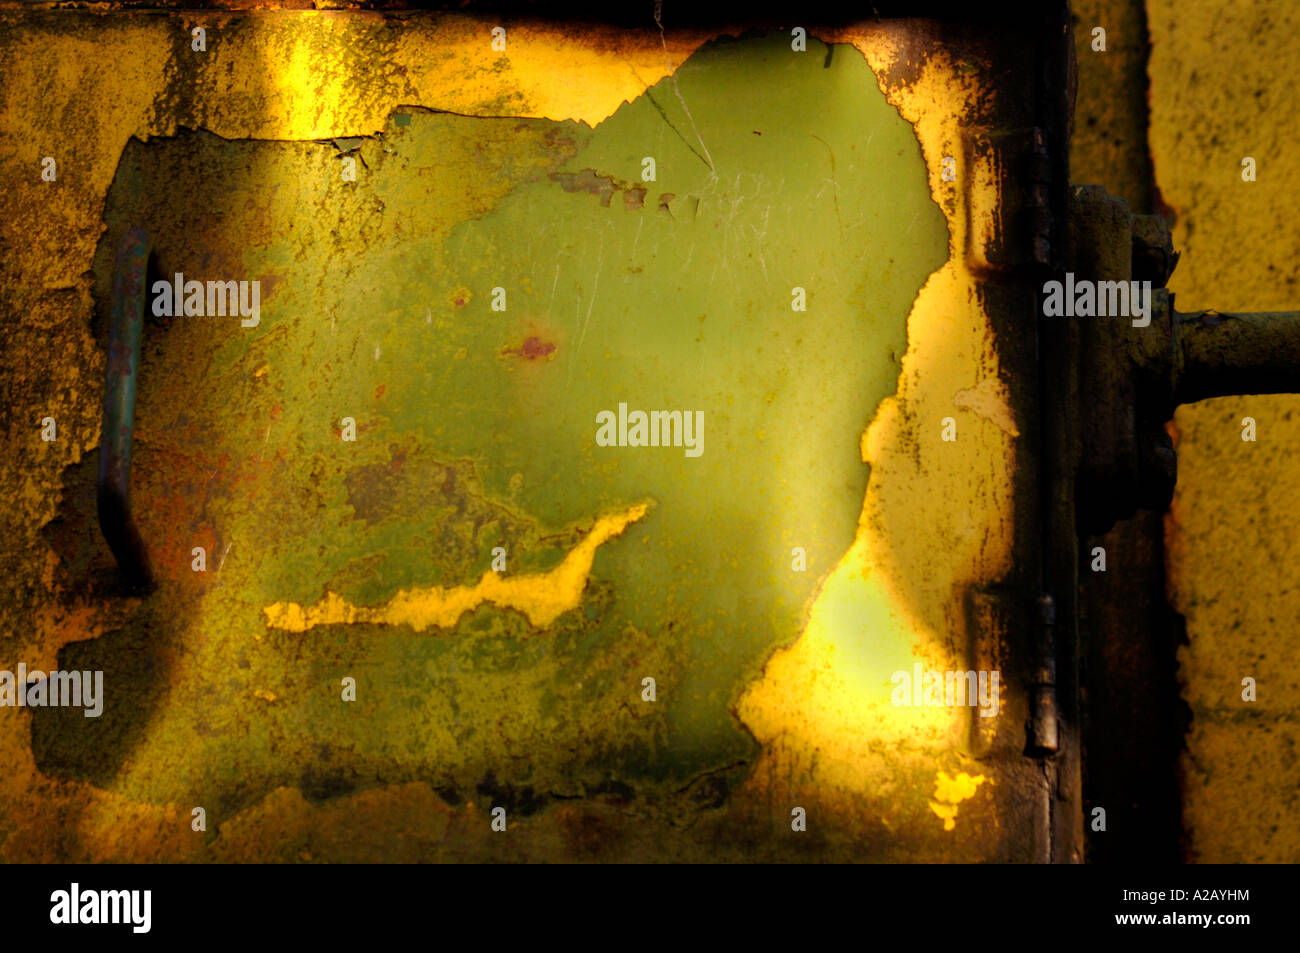 Eroding Metal Surfaces,Featuring A Section Of An Old Industrial Diesel Railway Train. - Stock Image